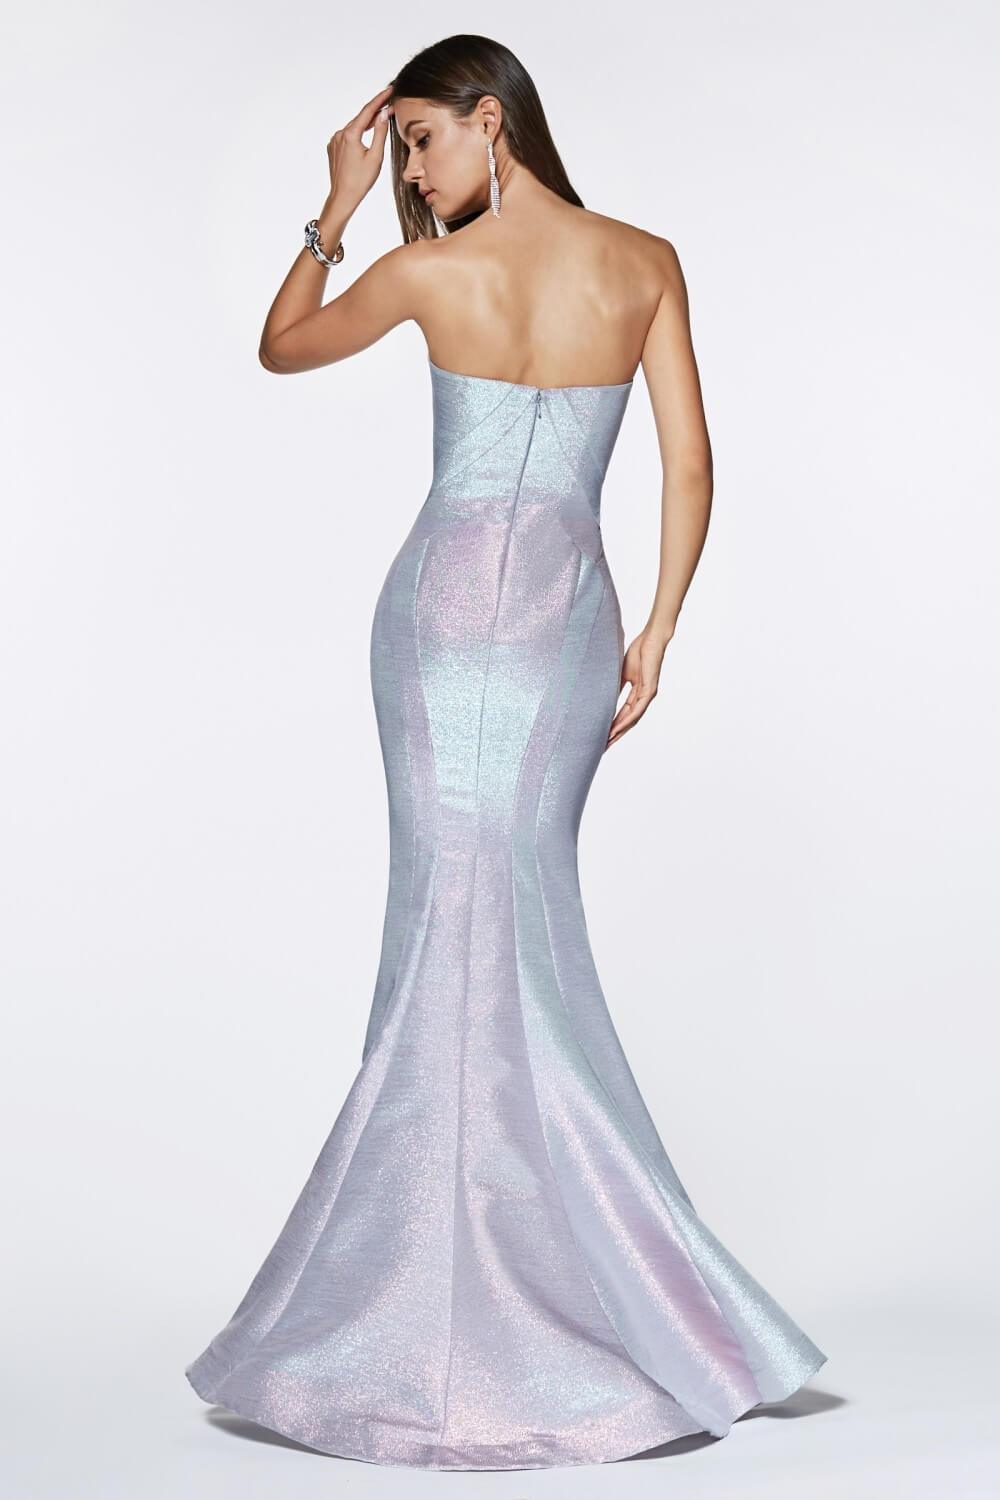 Strapless Long Metallic Mermaid Gown Prom Dress - The Dress Outlet  Cinderella Divine